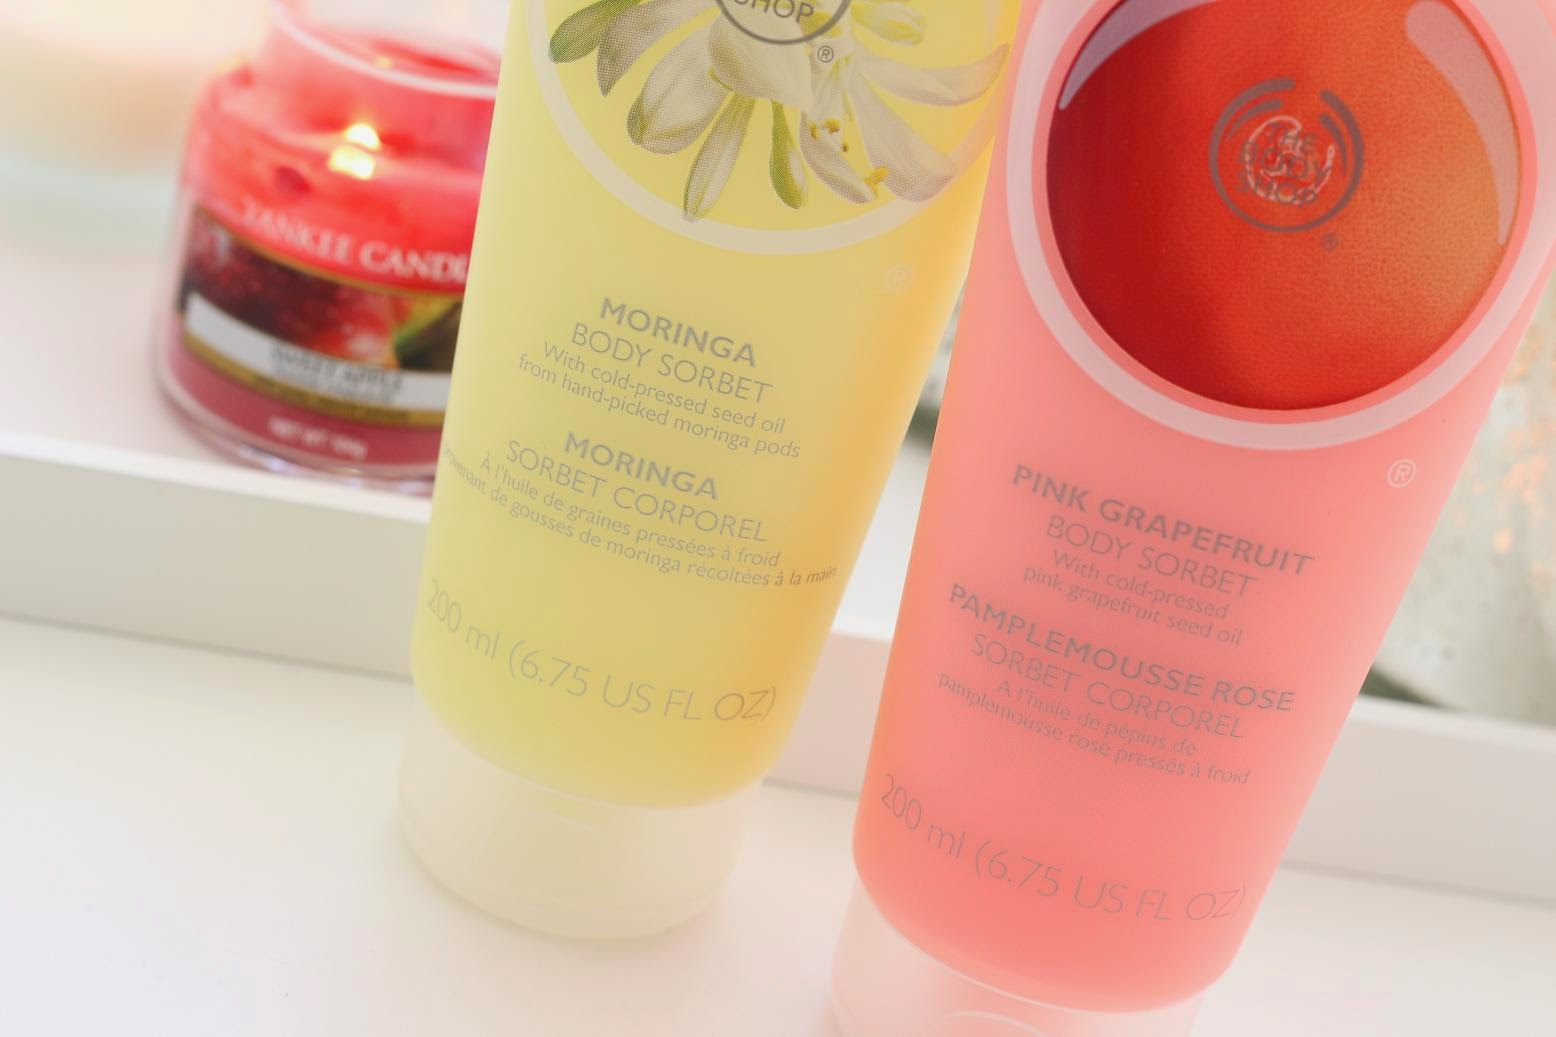 The Body Shop Body Sorbet